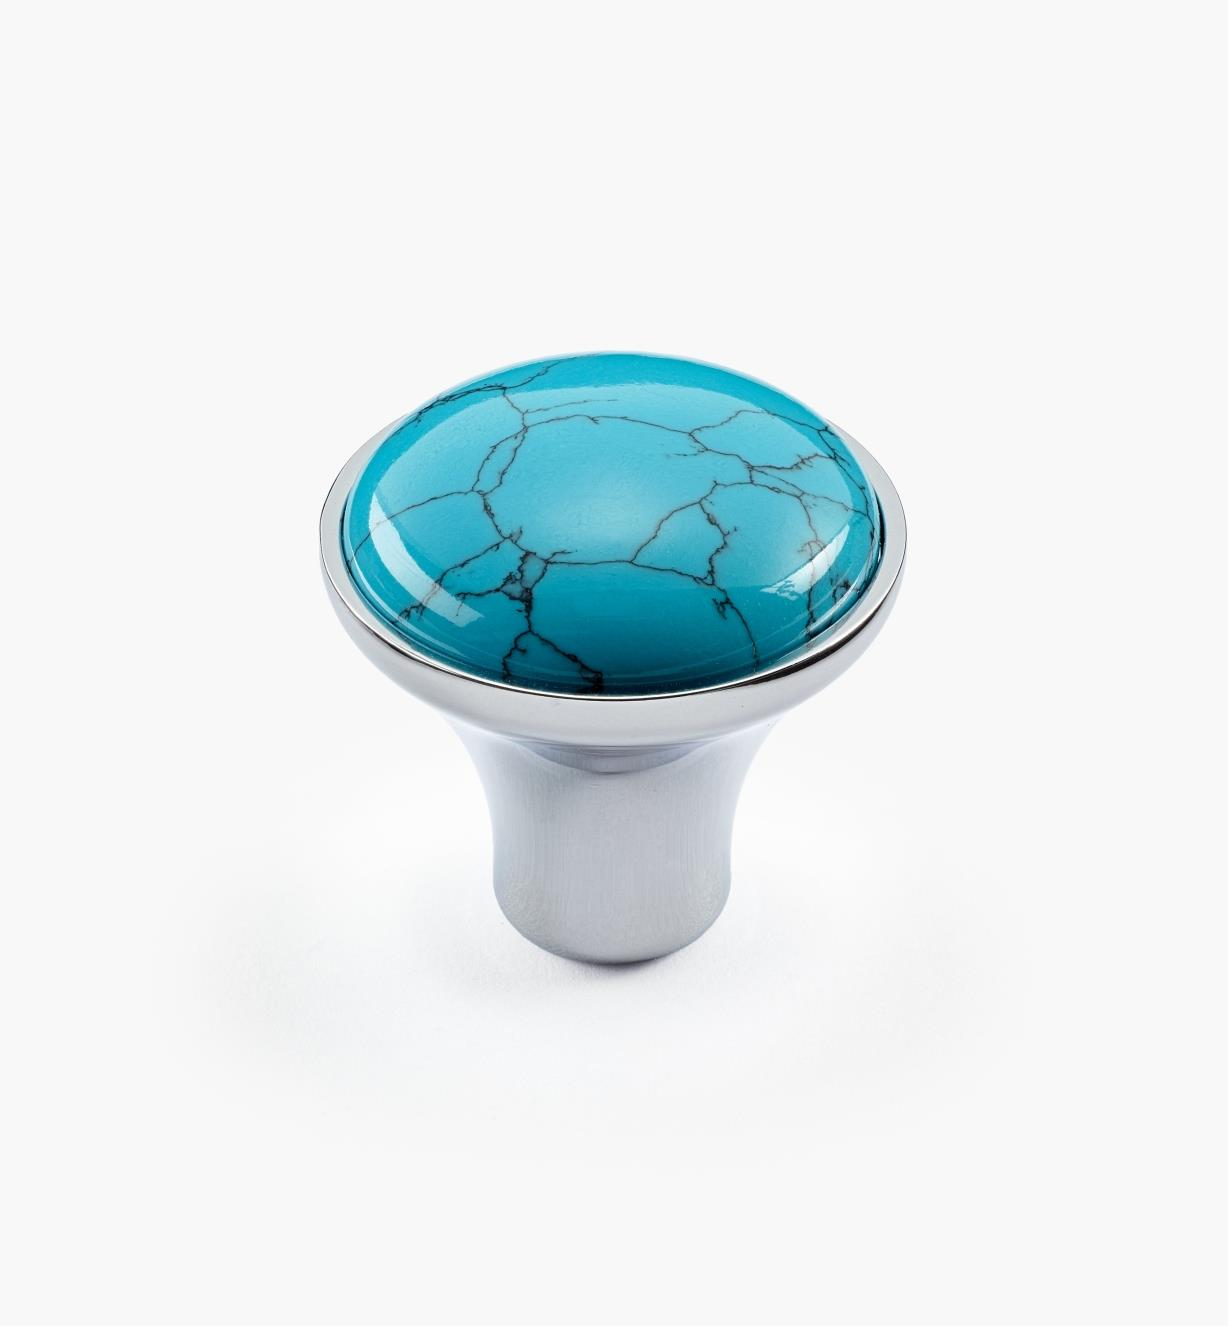 01A3622 - Grand bouton gemme turquoise, fini chrome poli, 28 mm